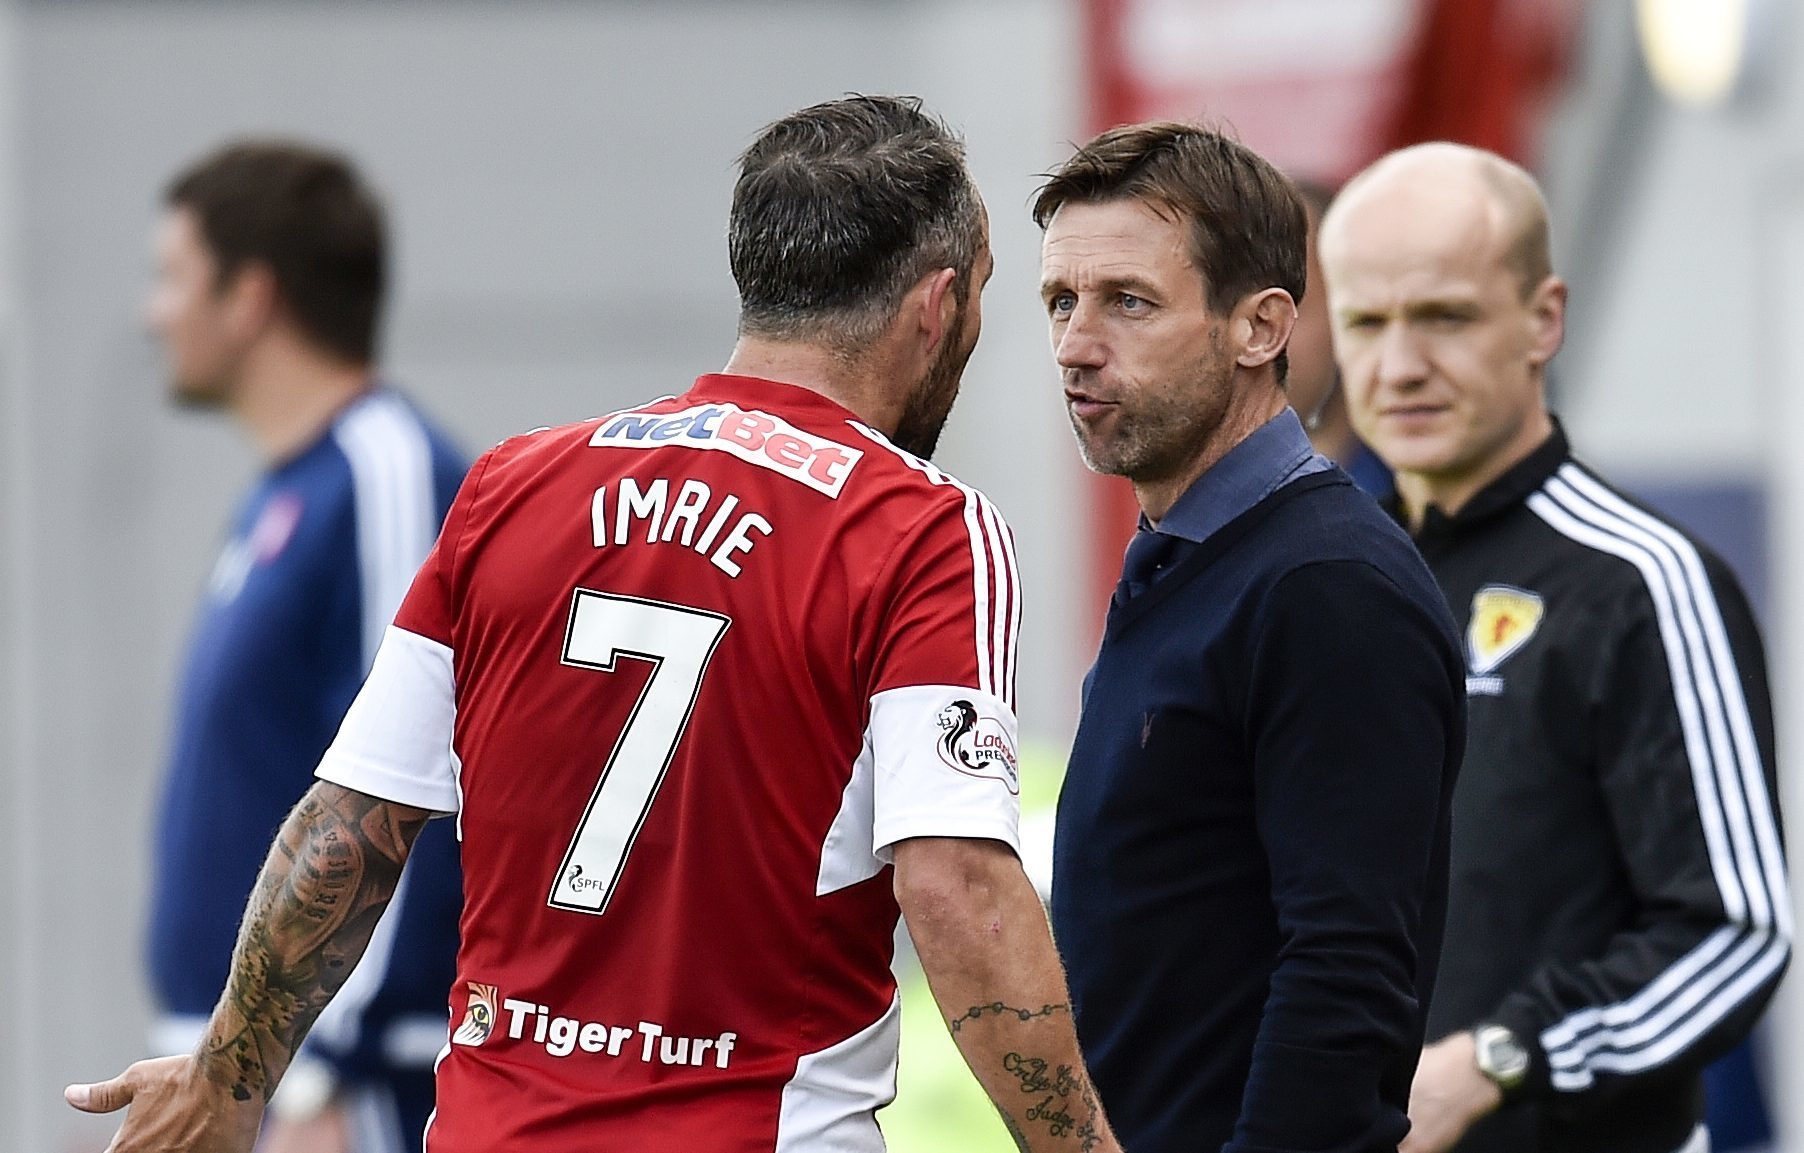 Neil McCann and Dougie Imrie come face to face.